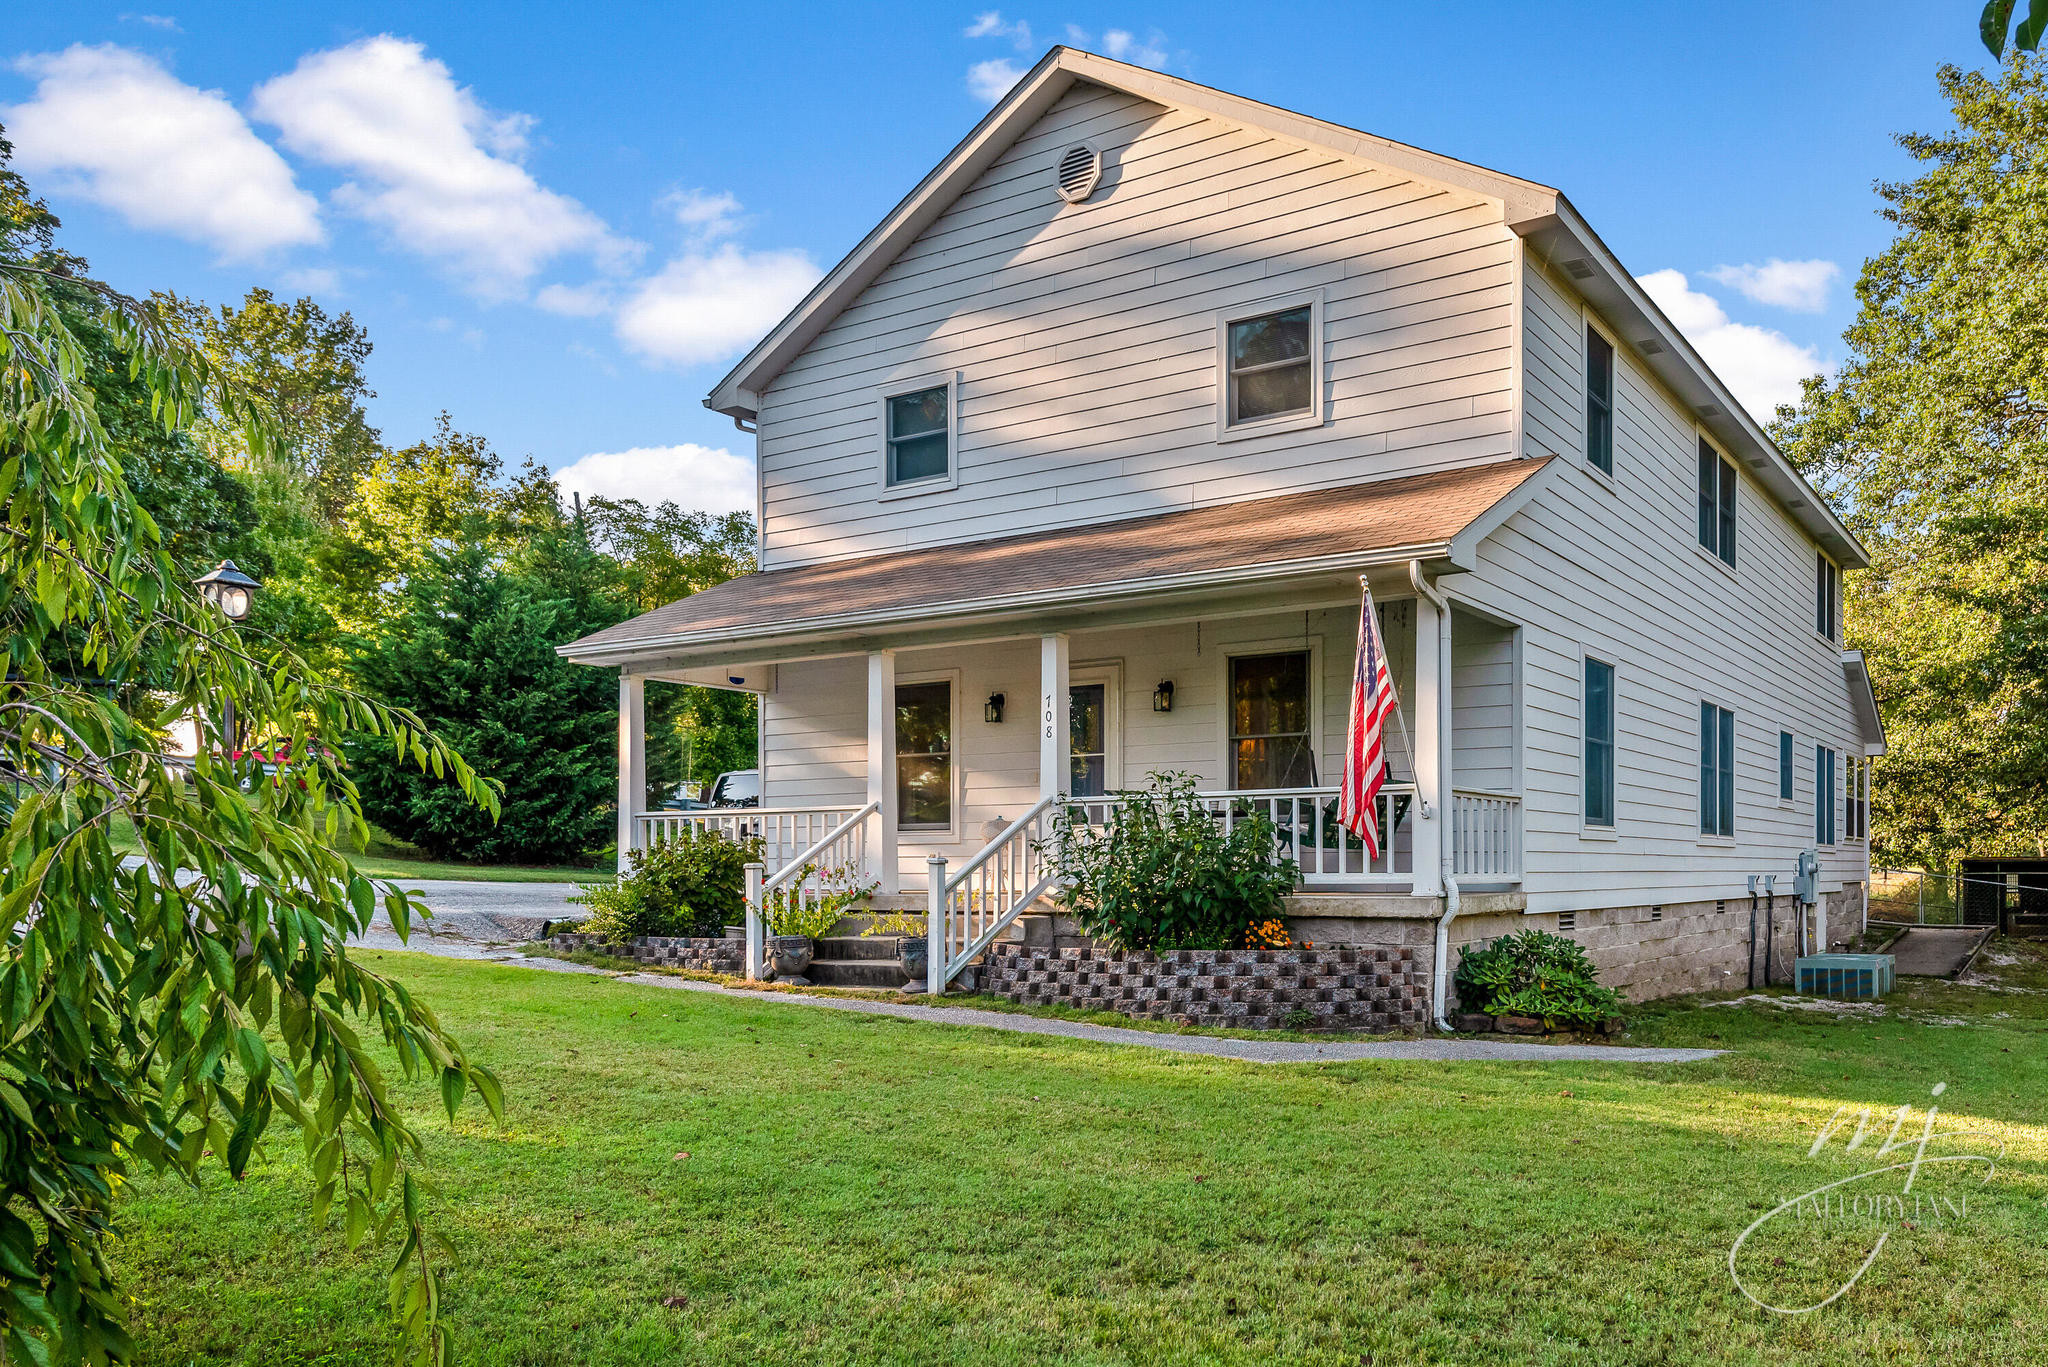 2-Story House In Berryville